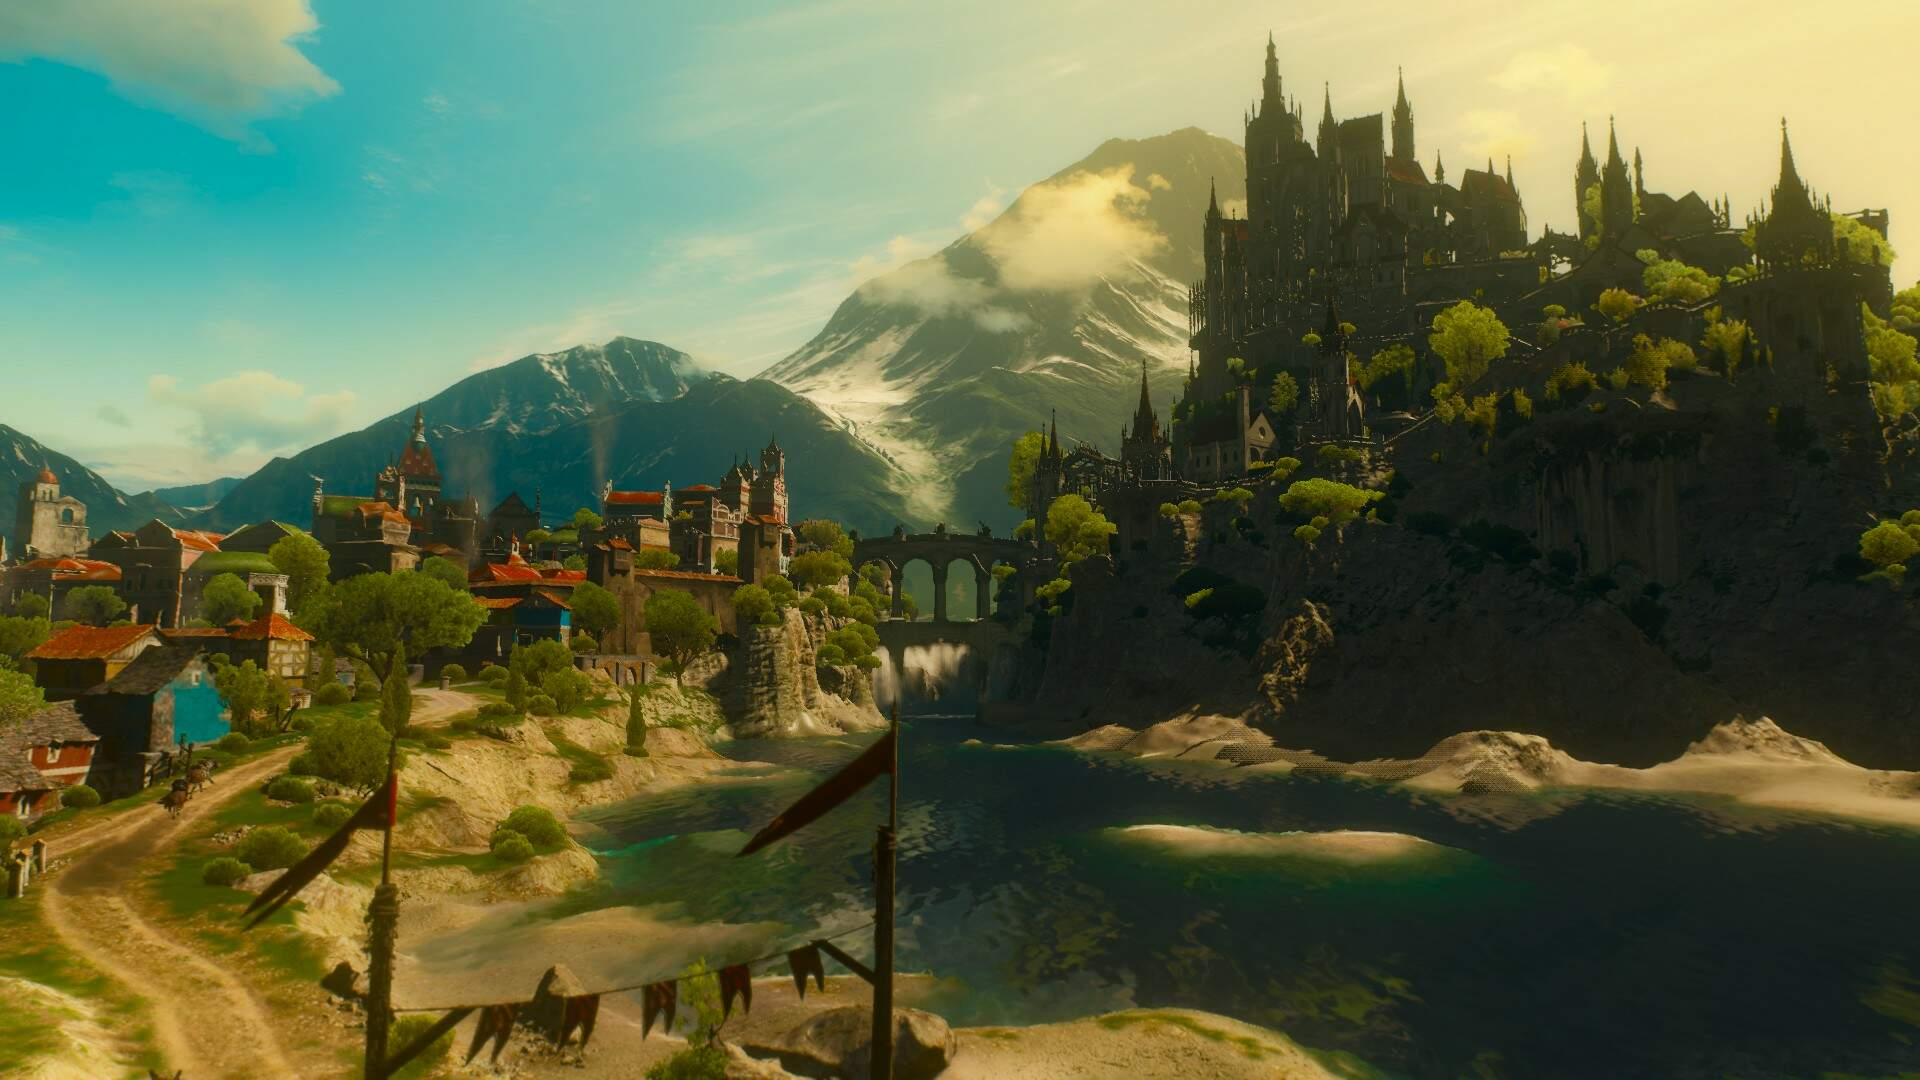 Witcher 3 Blood and Wine: How to Get All the Endings